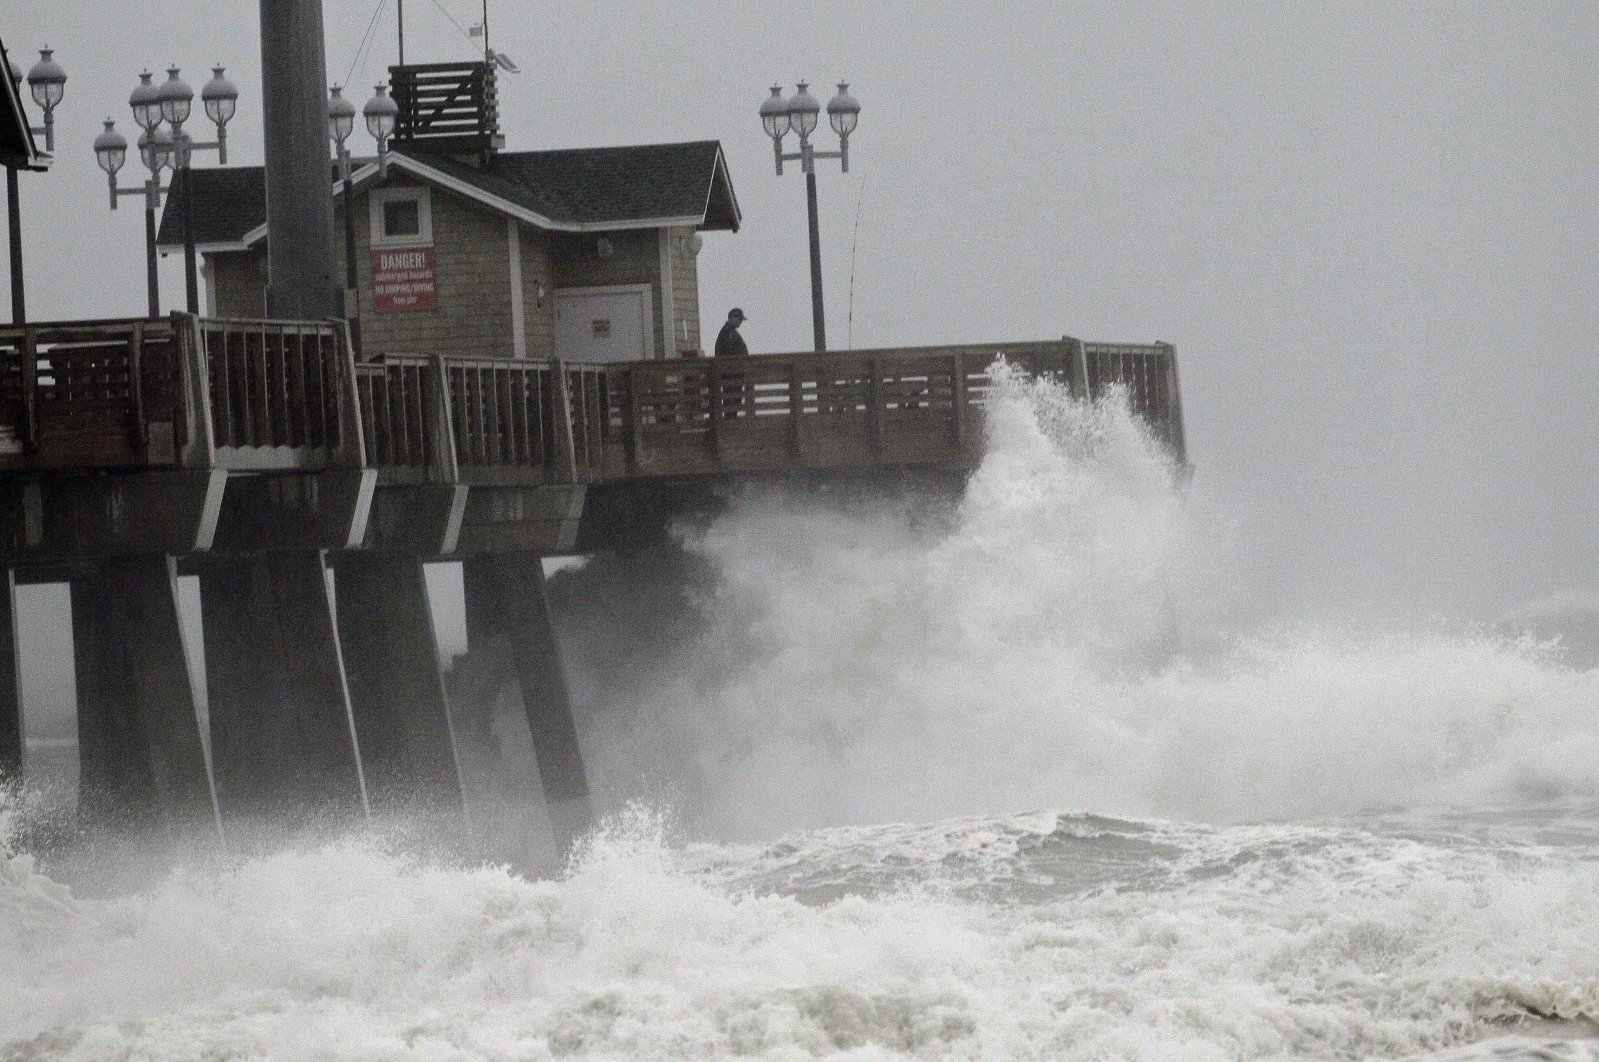 Large waves generated by Hurricane Sandy crash into Jeanette's Pier in Nags Head as the storm moves up the east coast, N.C., U.S., Oct. 27, 2012. (AP Photo)